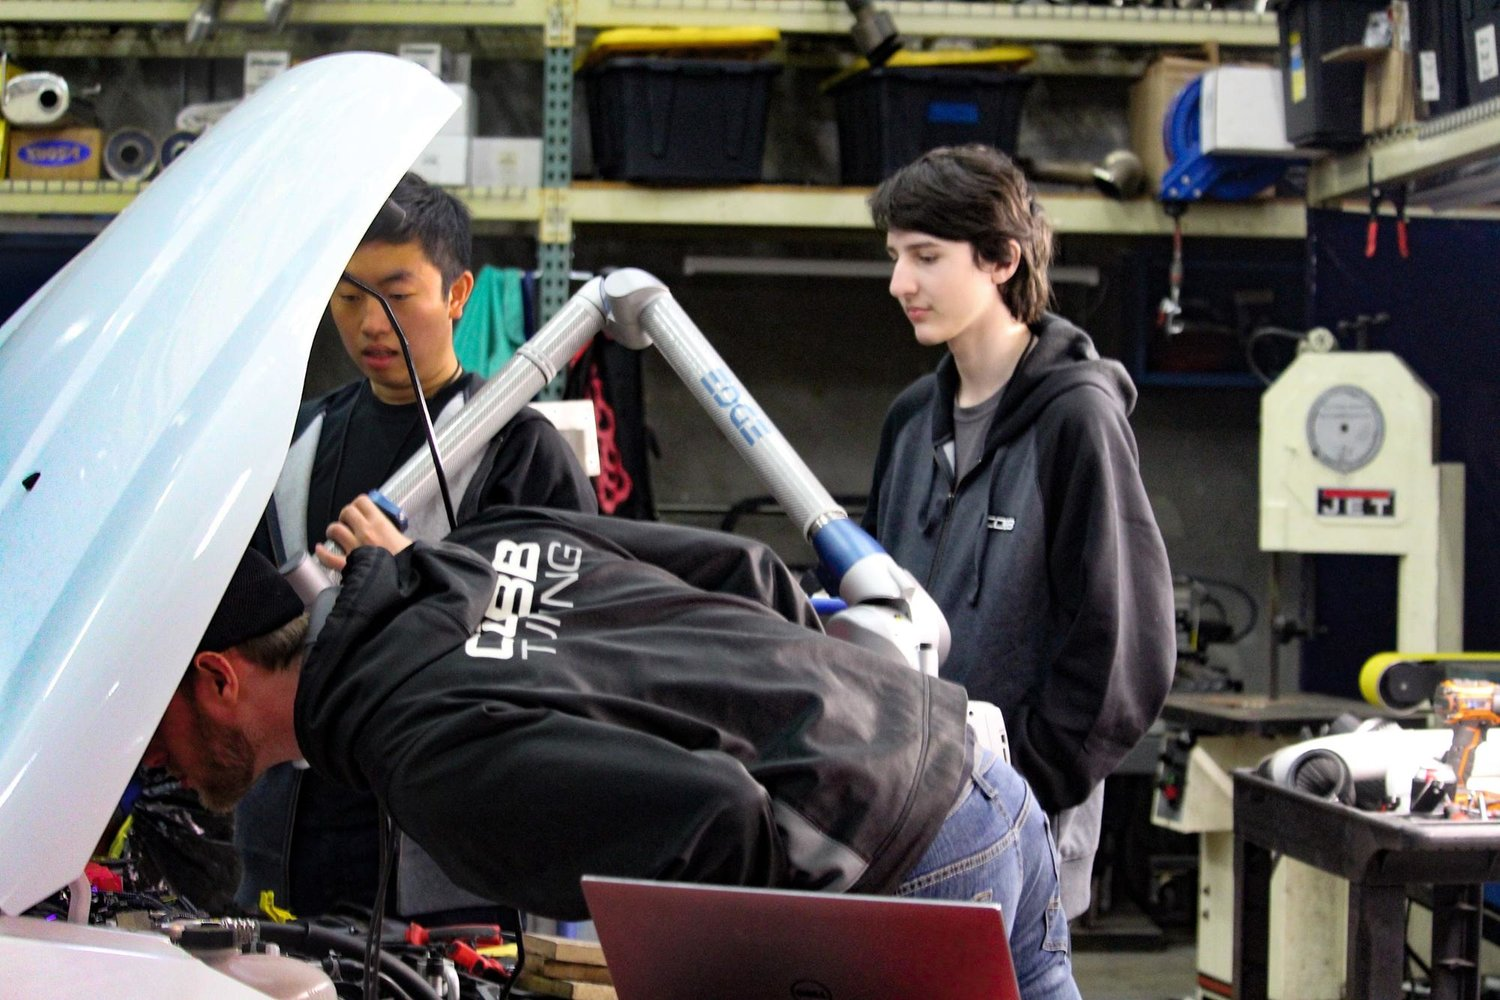 Vandegrift High School seniors Alex Tan (left) and Phillip Branca (right), observe COBB Tuning employee Paul Geyman during Leander ISD's COOL Week.